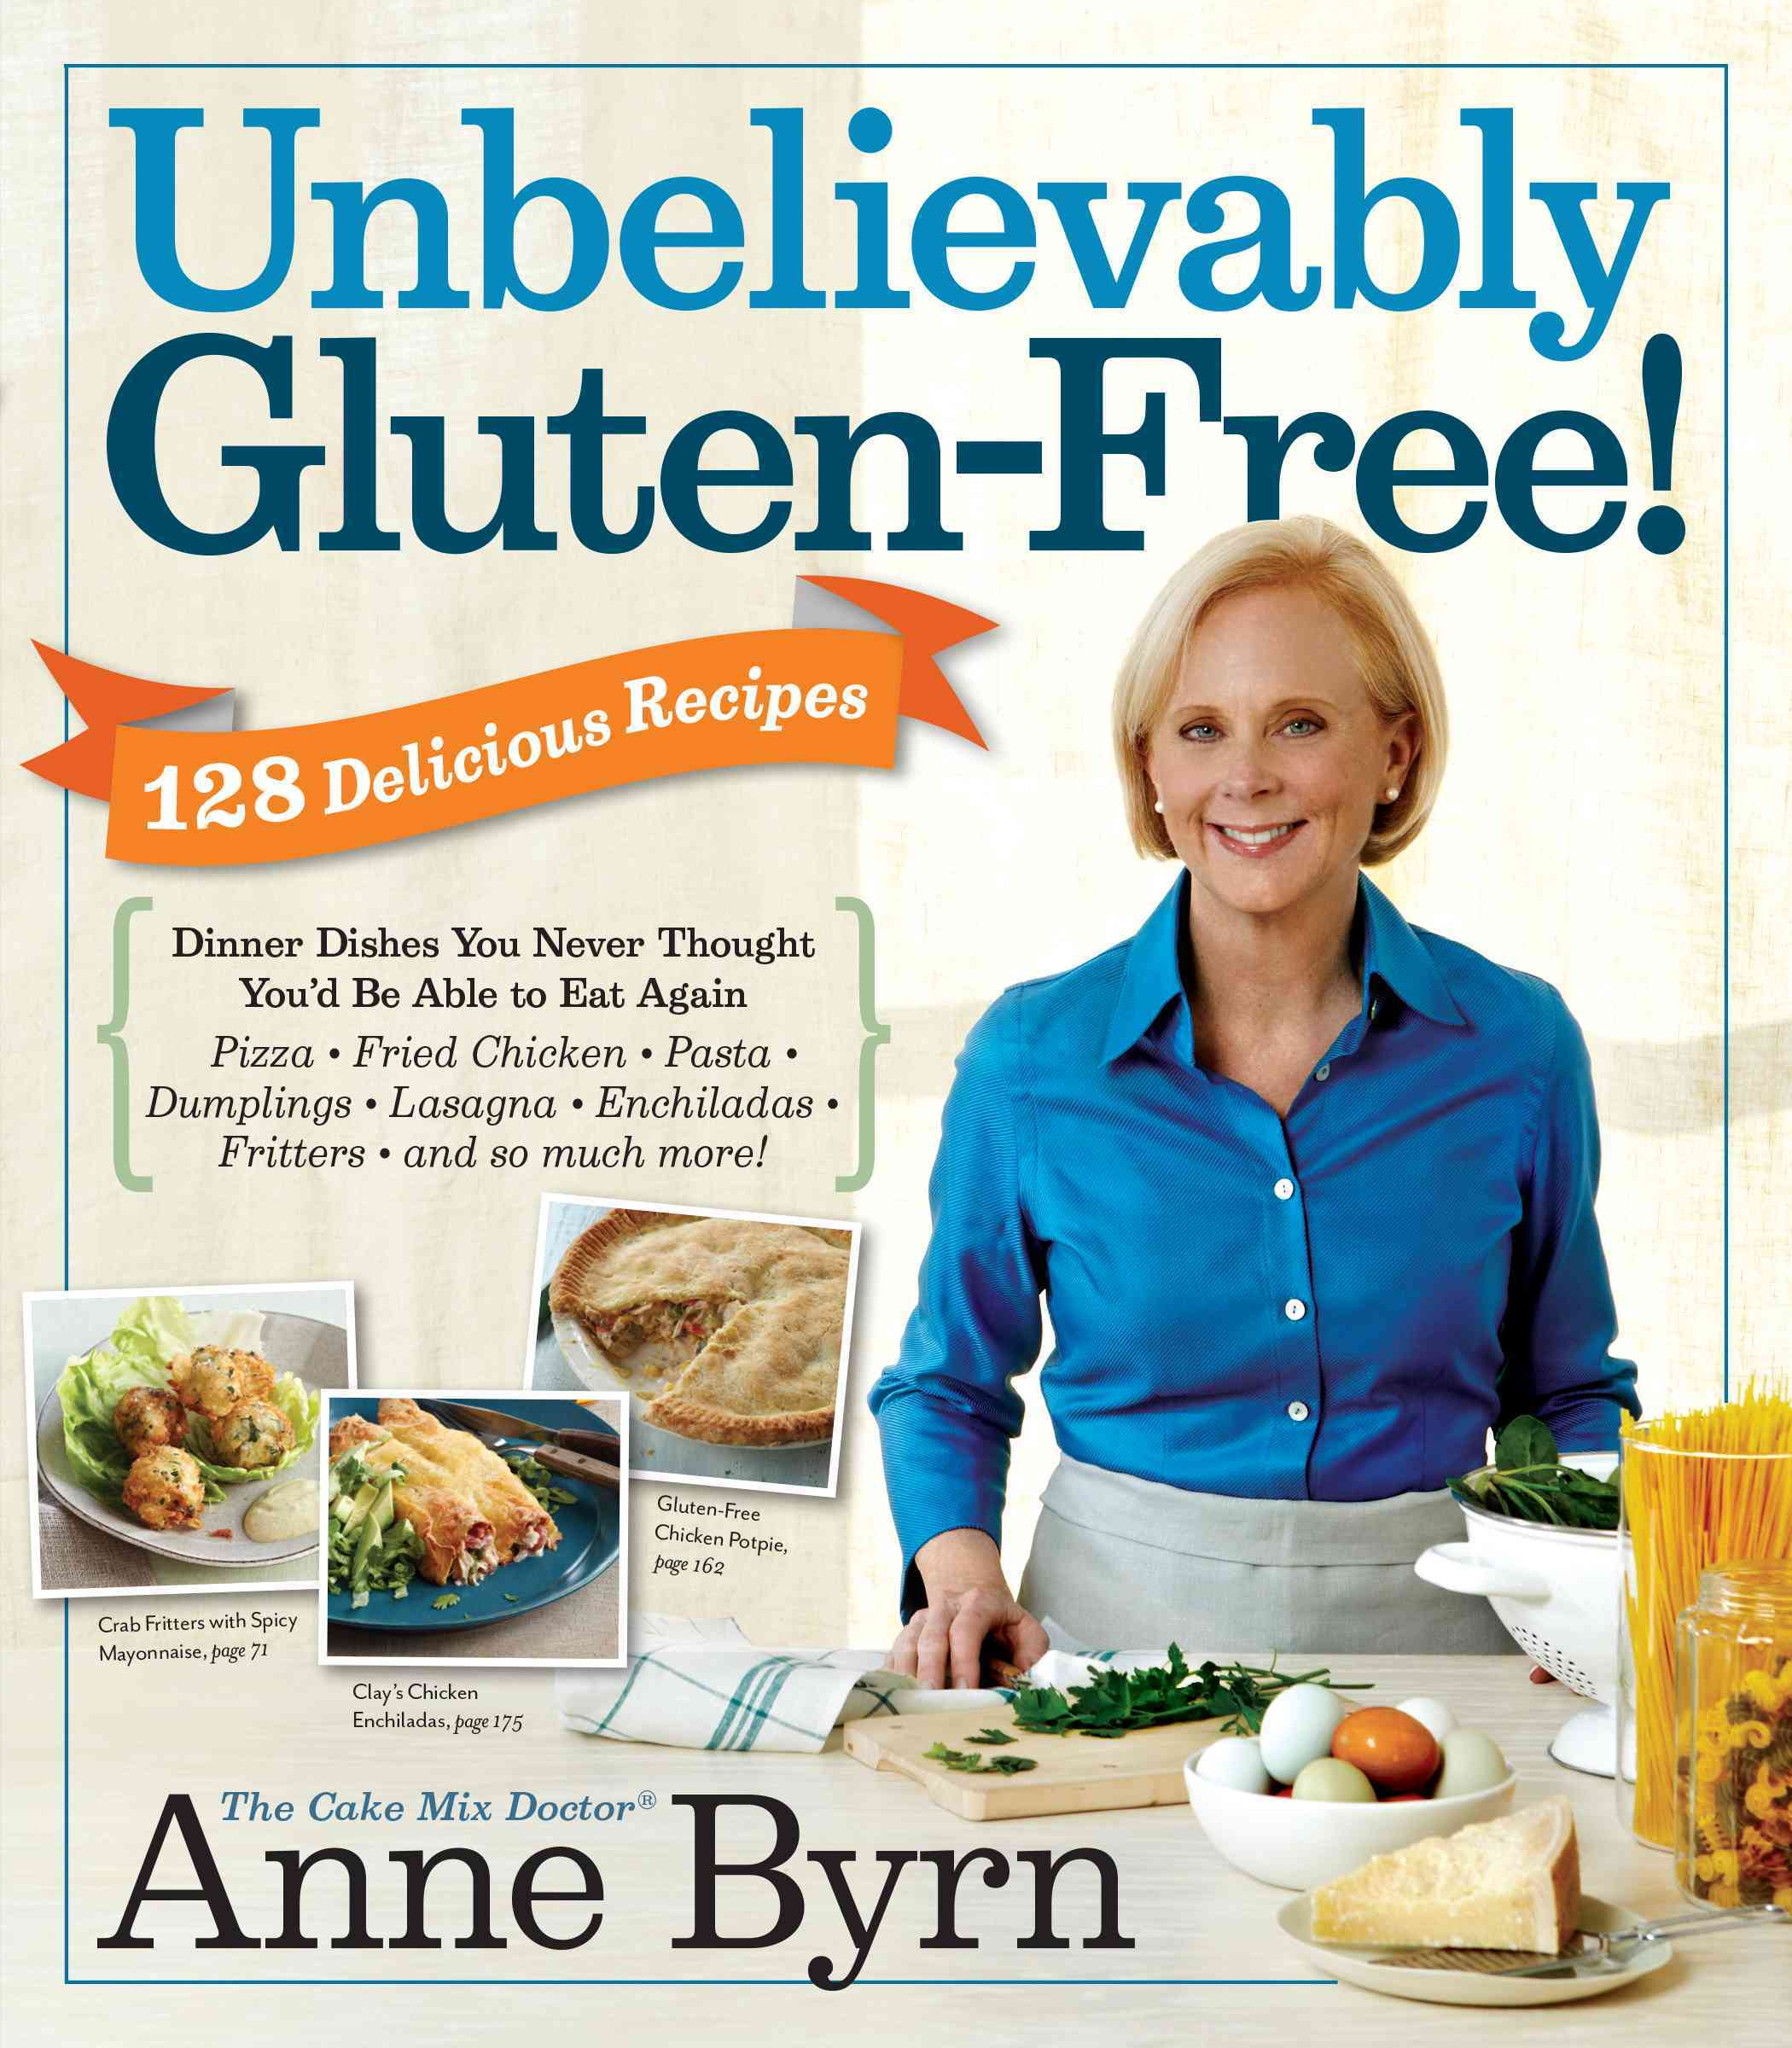 Unbelievably Gluten-Free!: Dinner Dishes You Never Thought You'd Be Able to Eat Again (Paperback)